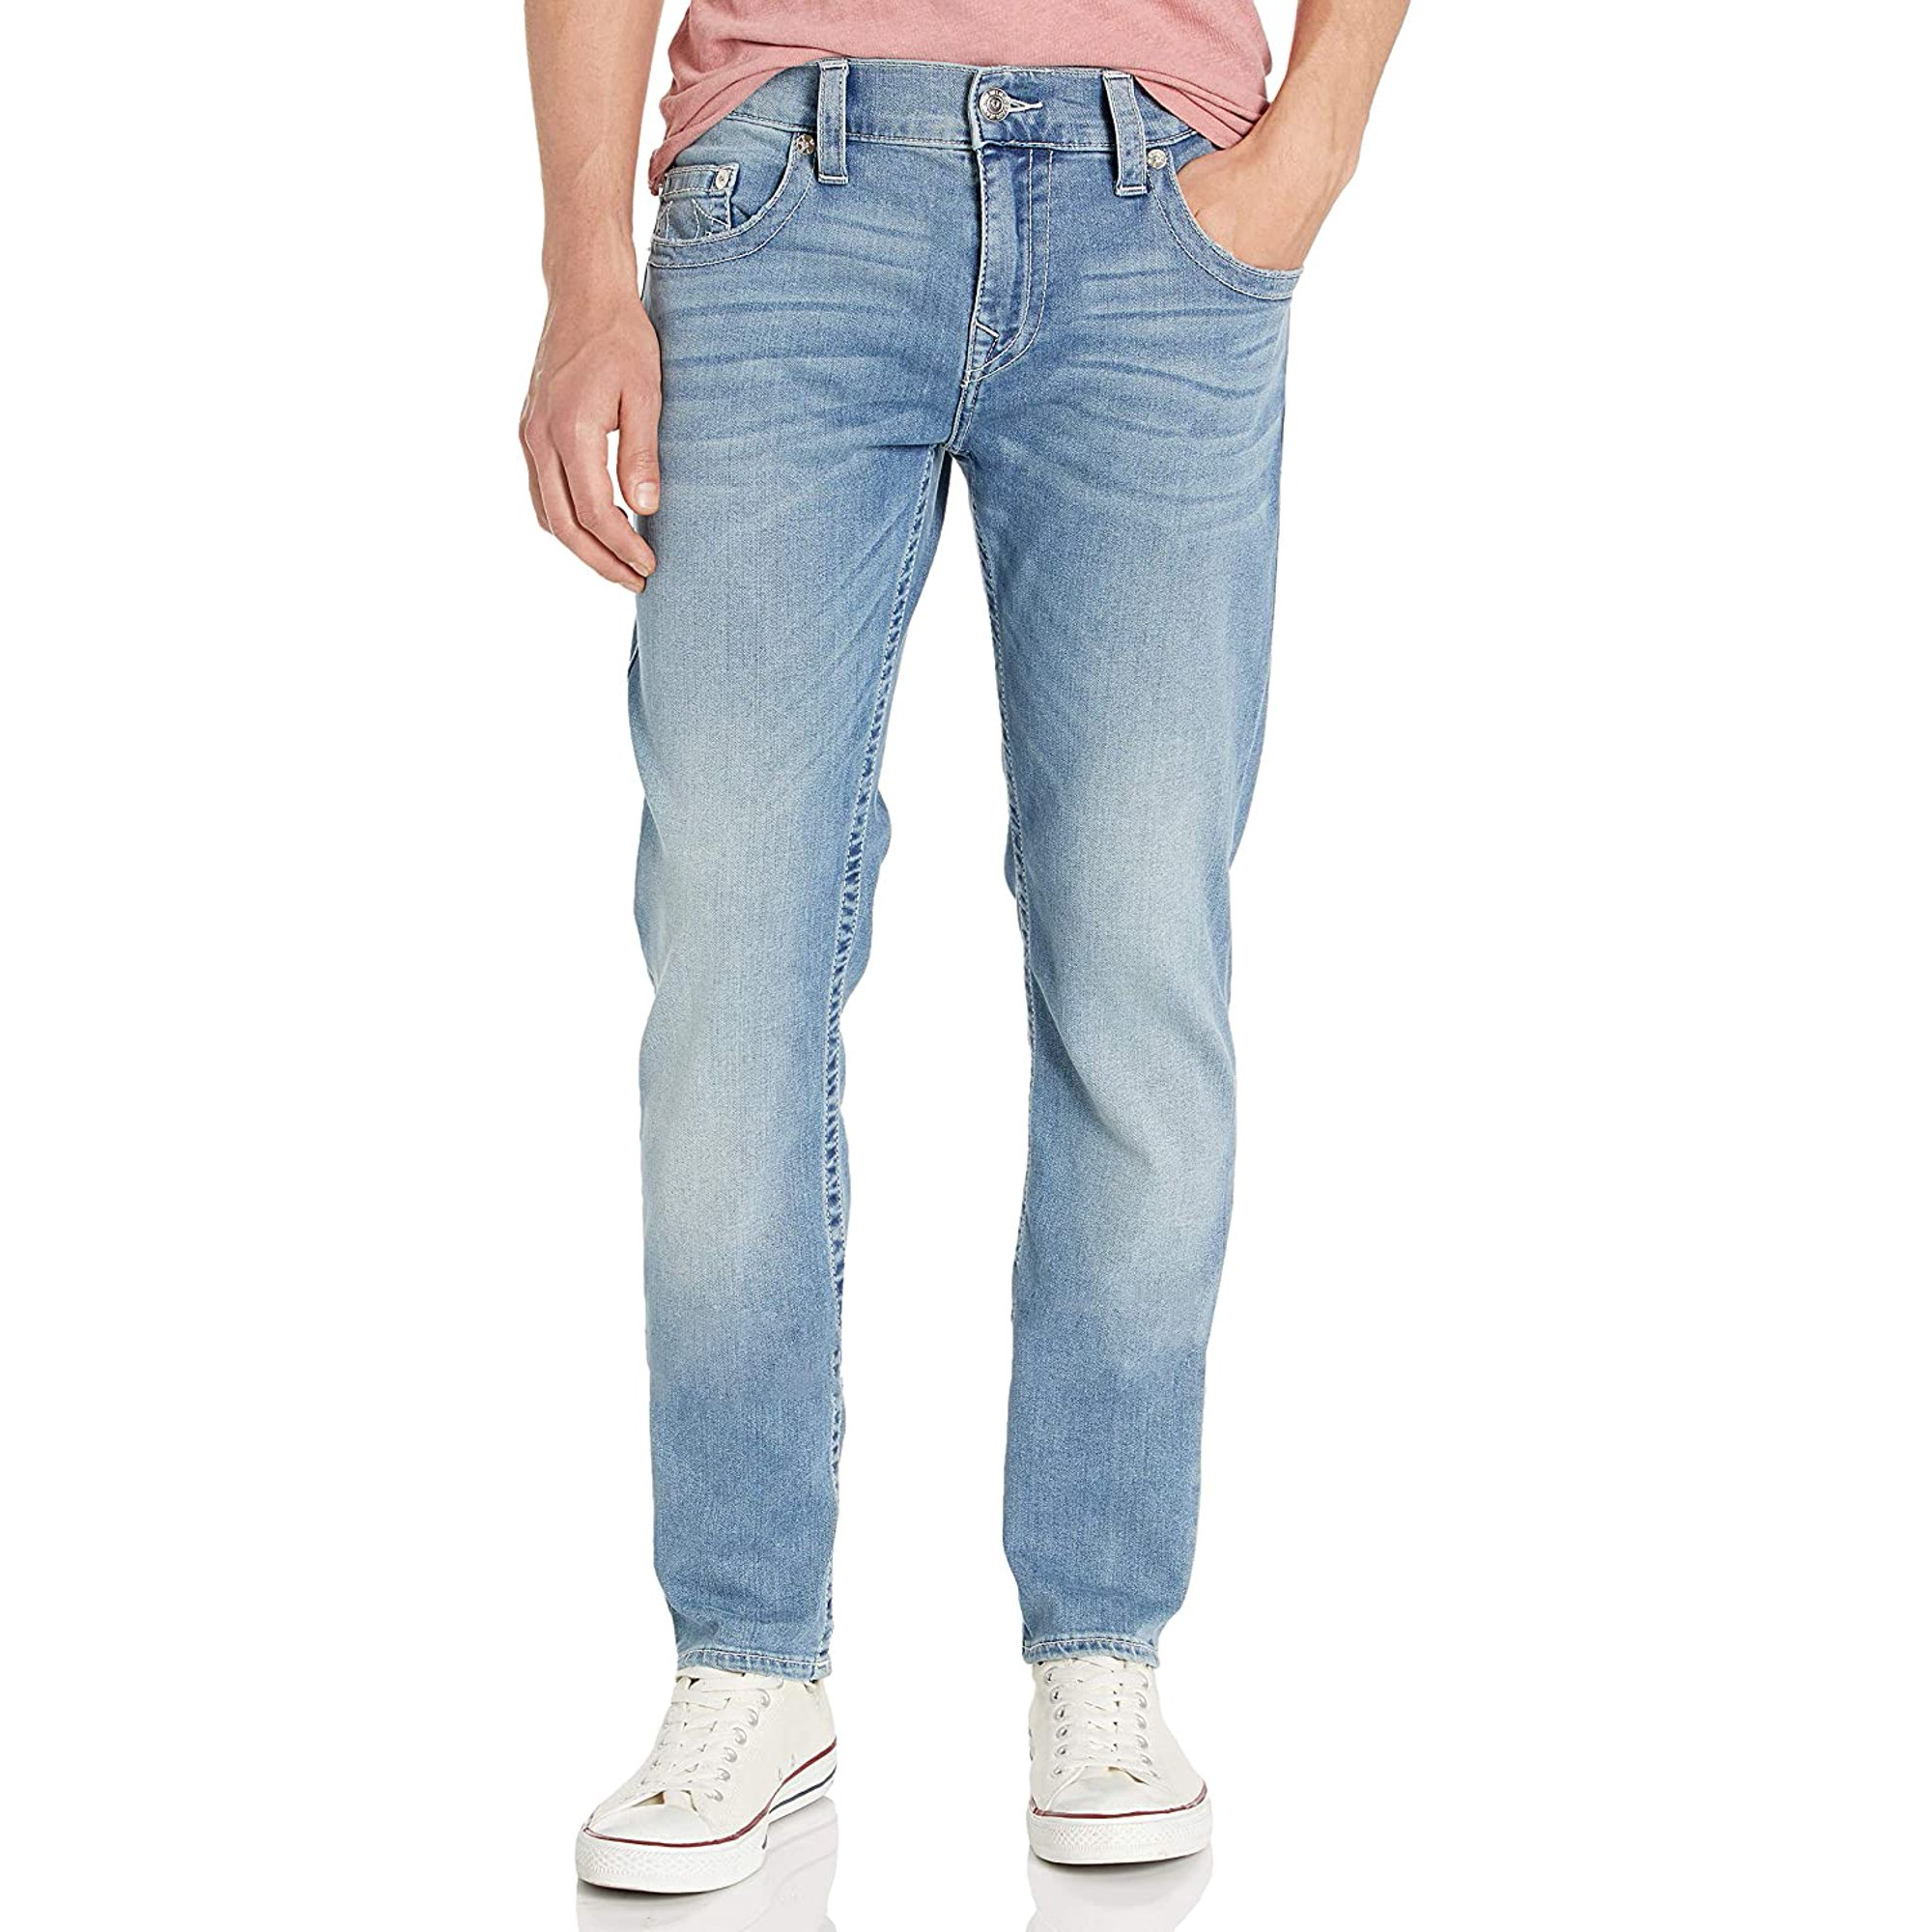 True Religion Men's Rocco Skinny Jean, Epgm Light Moody Blues, 44